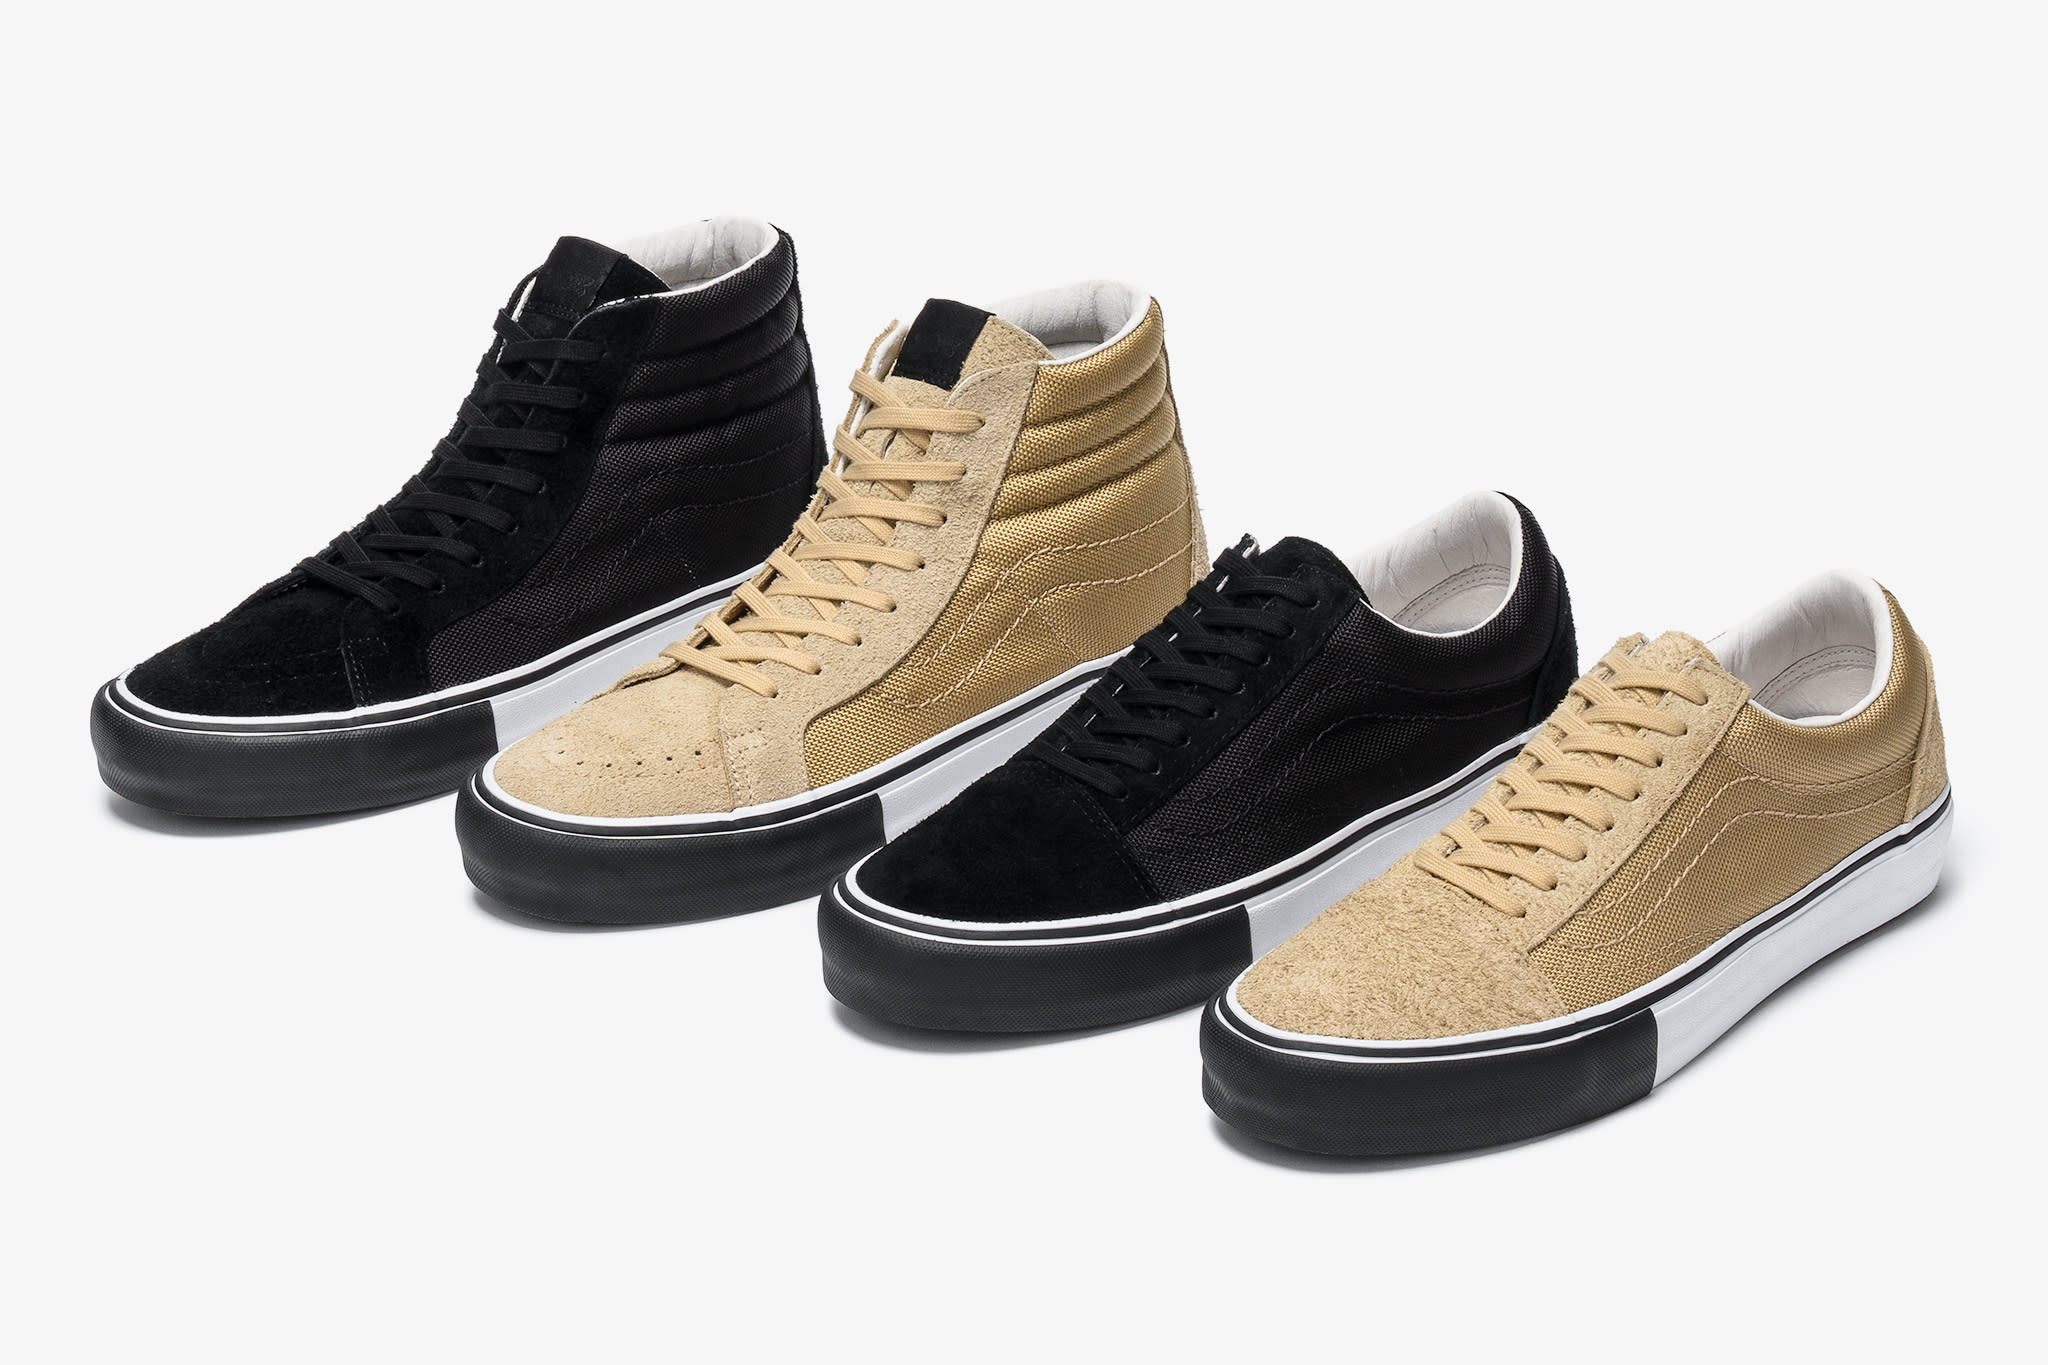 HAVEN / VANS® VAULT FW20 Collection   Now Available   HAVEN